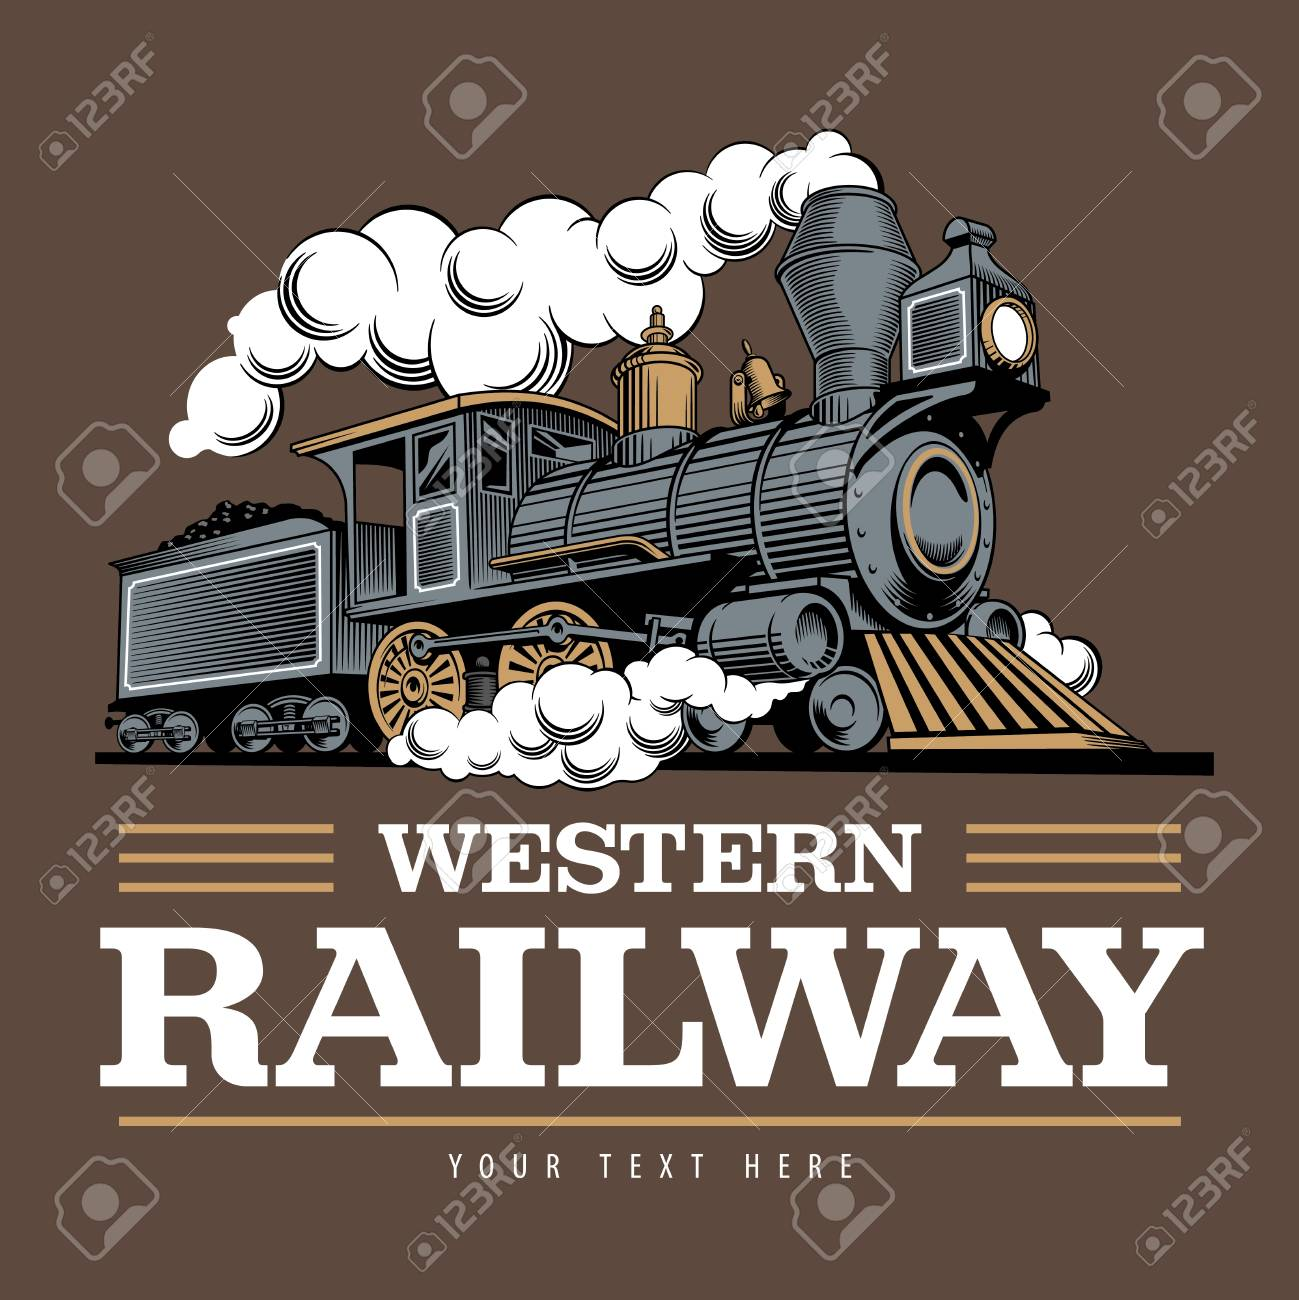 Vintage Steam Train Locomotive Engraving Style Vector Illustration Royalty Free Cliparts Vectors And Stock Illustration Image 119865822